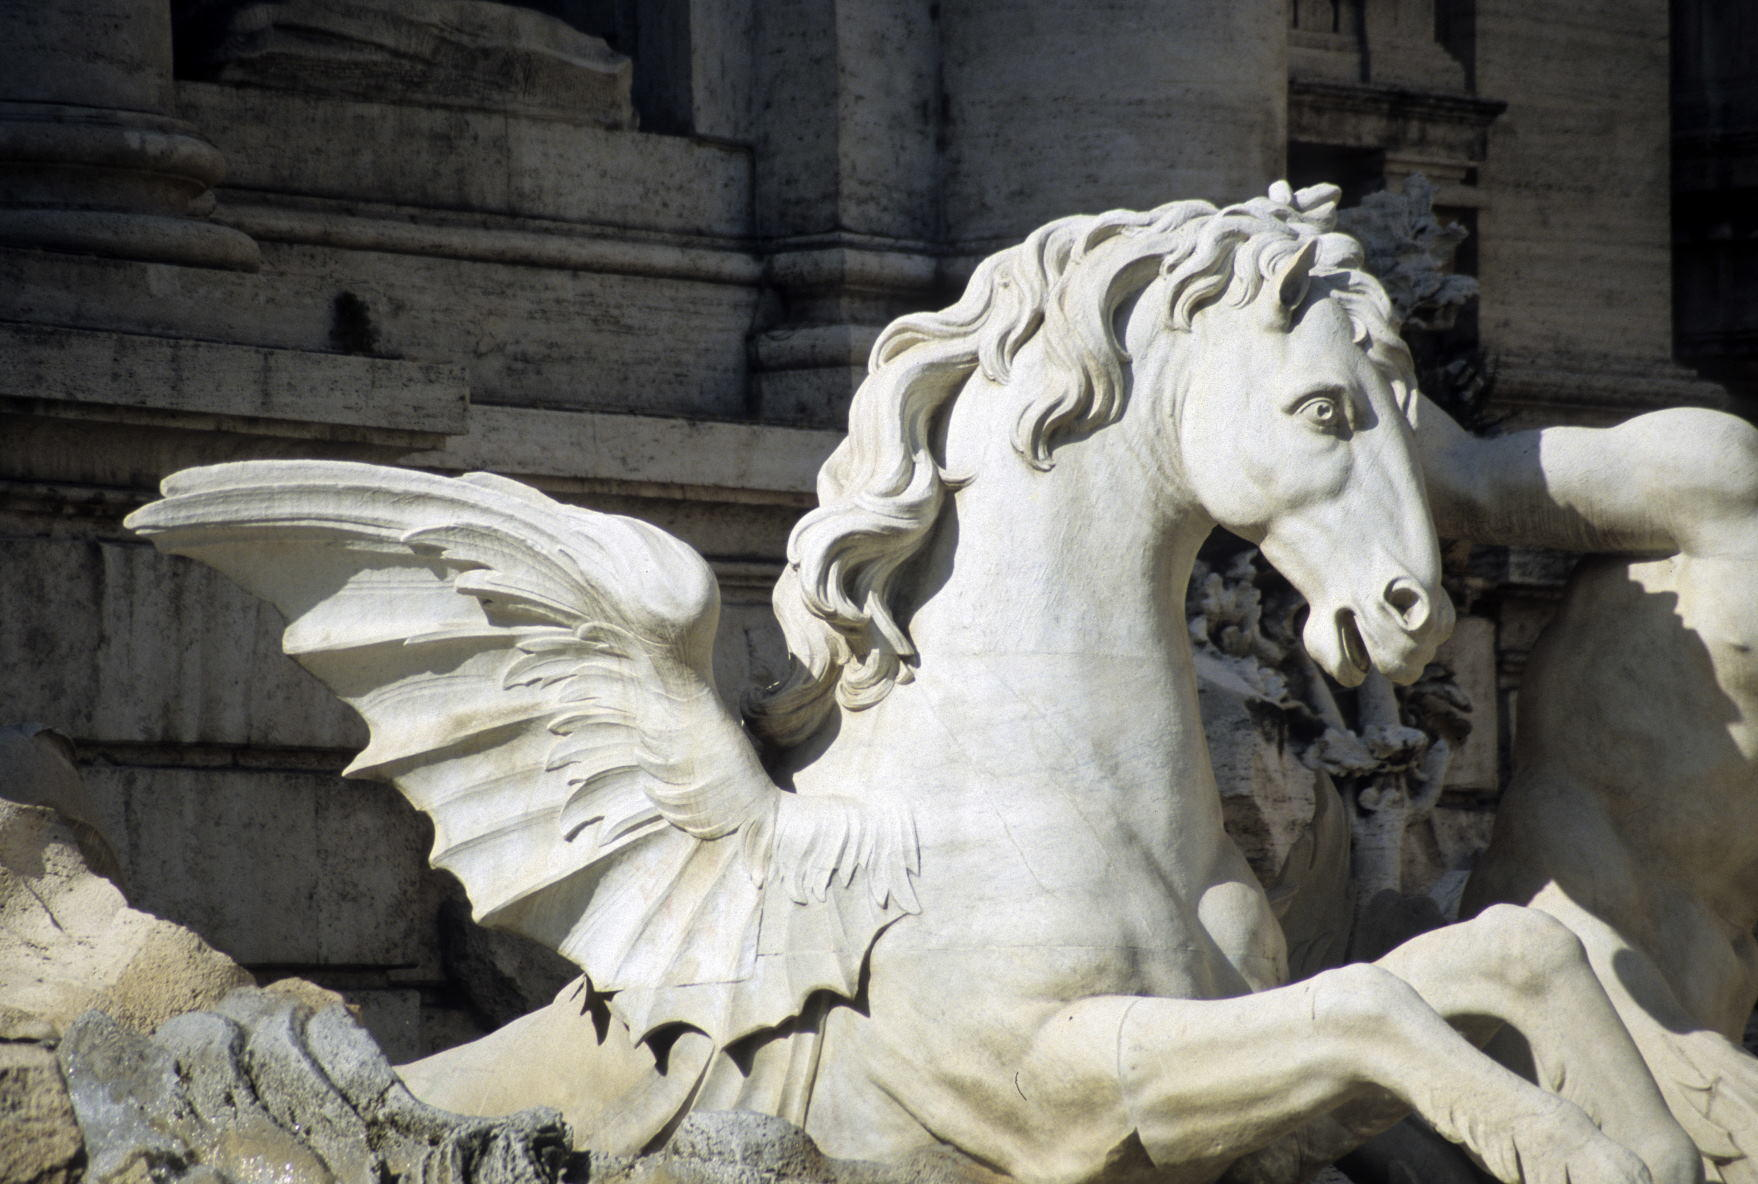 The sculptures of the Ocean and the two tritons, with the winged horses in the central part in Trevi Fountain, Rome, Italy (1)